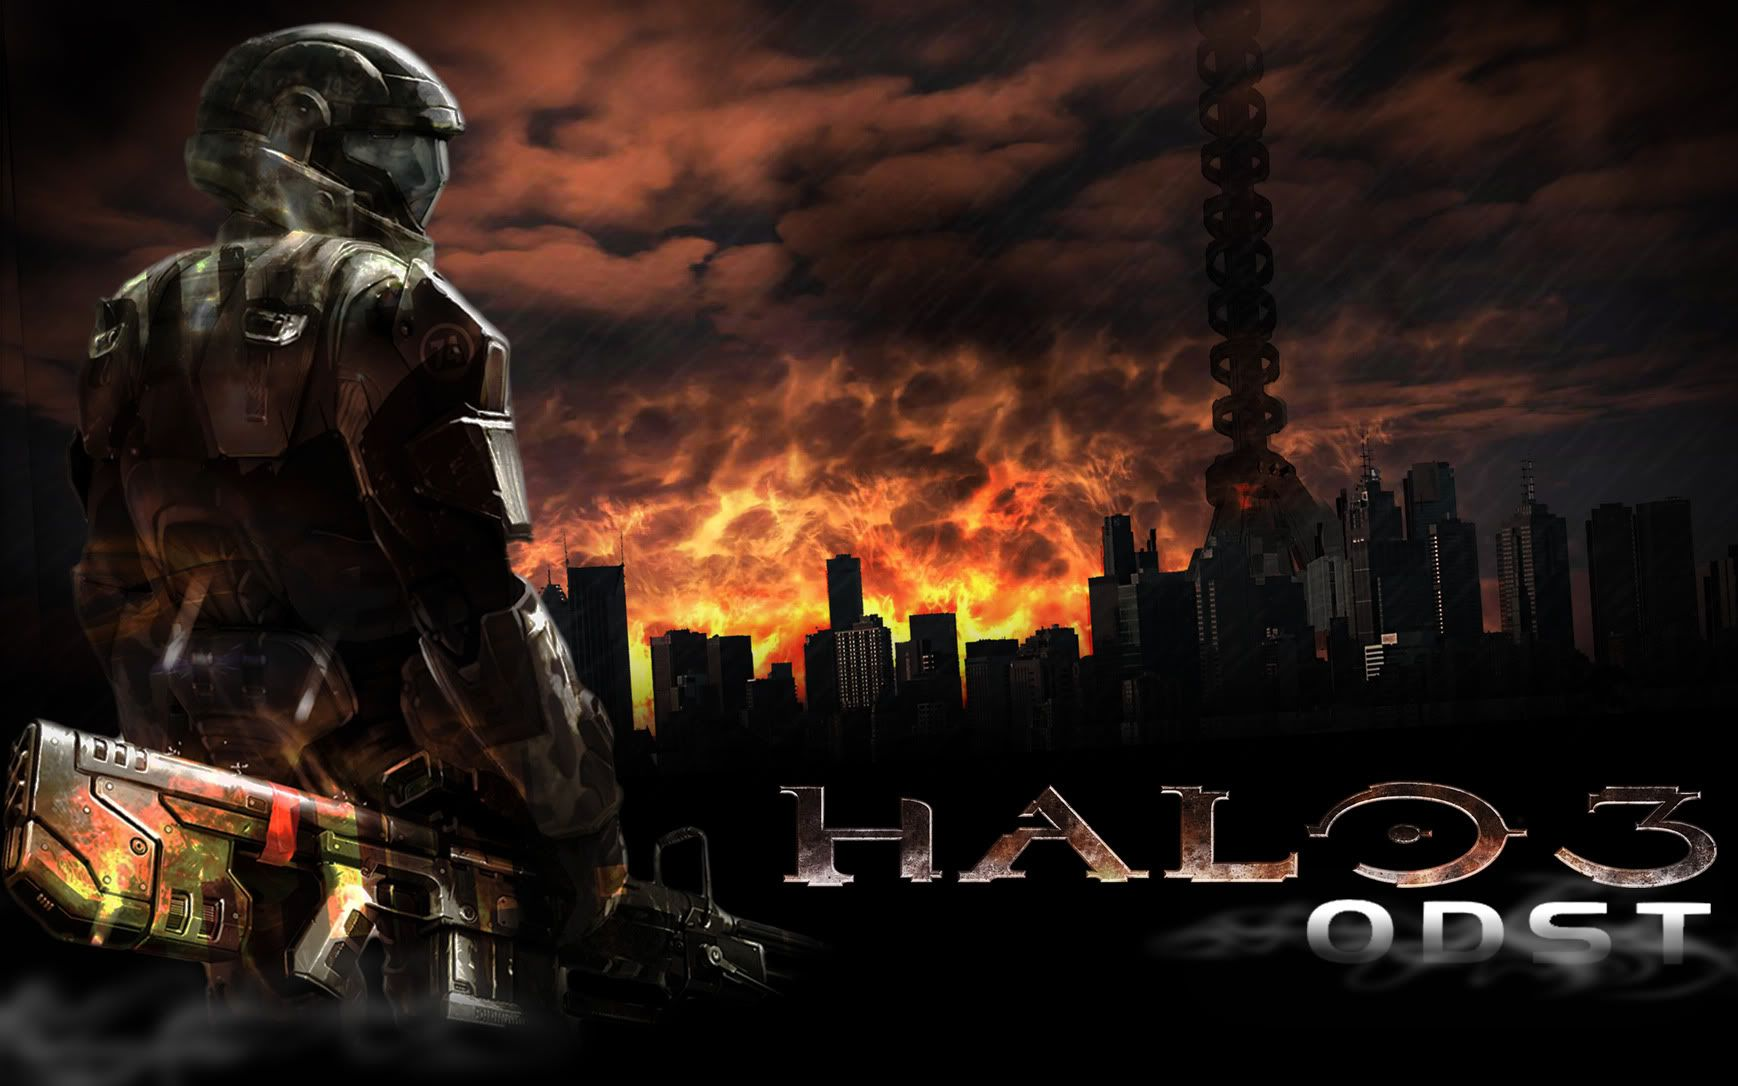 Halo 3 Odst Wallpapers 1080p Halo Halo 3 Odst Halo 5 Guardians